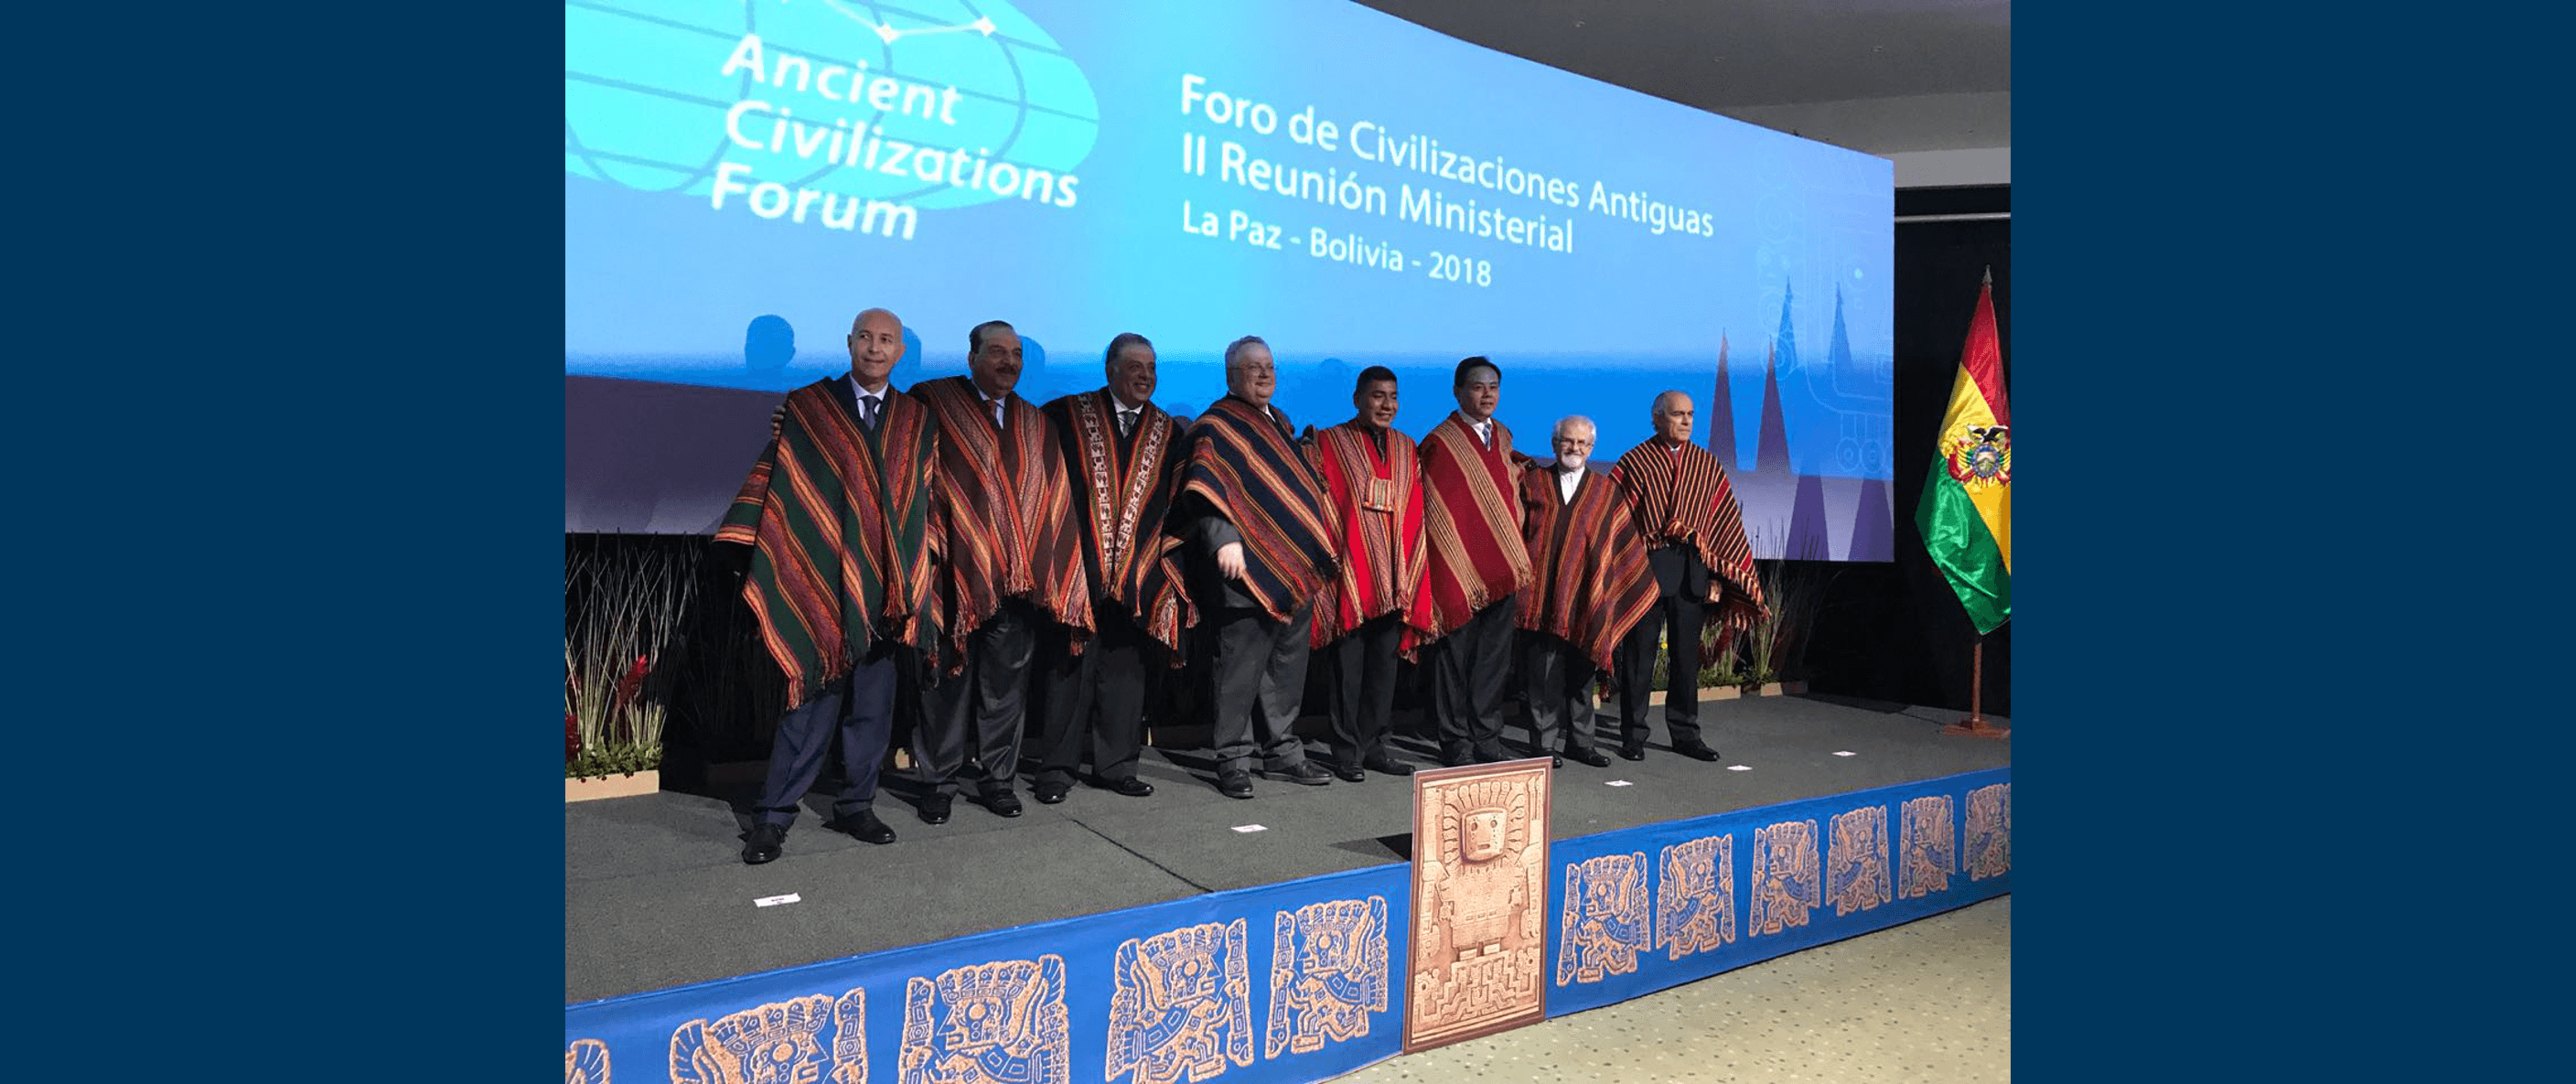 Family photo of the second ministerial meeting in La Paz, Bolivia, 2018